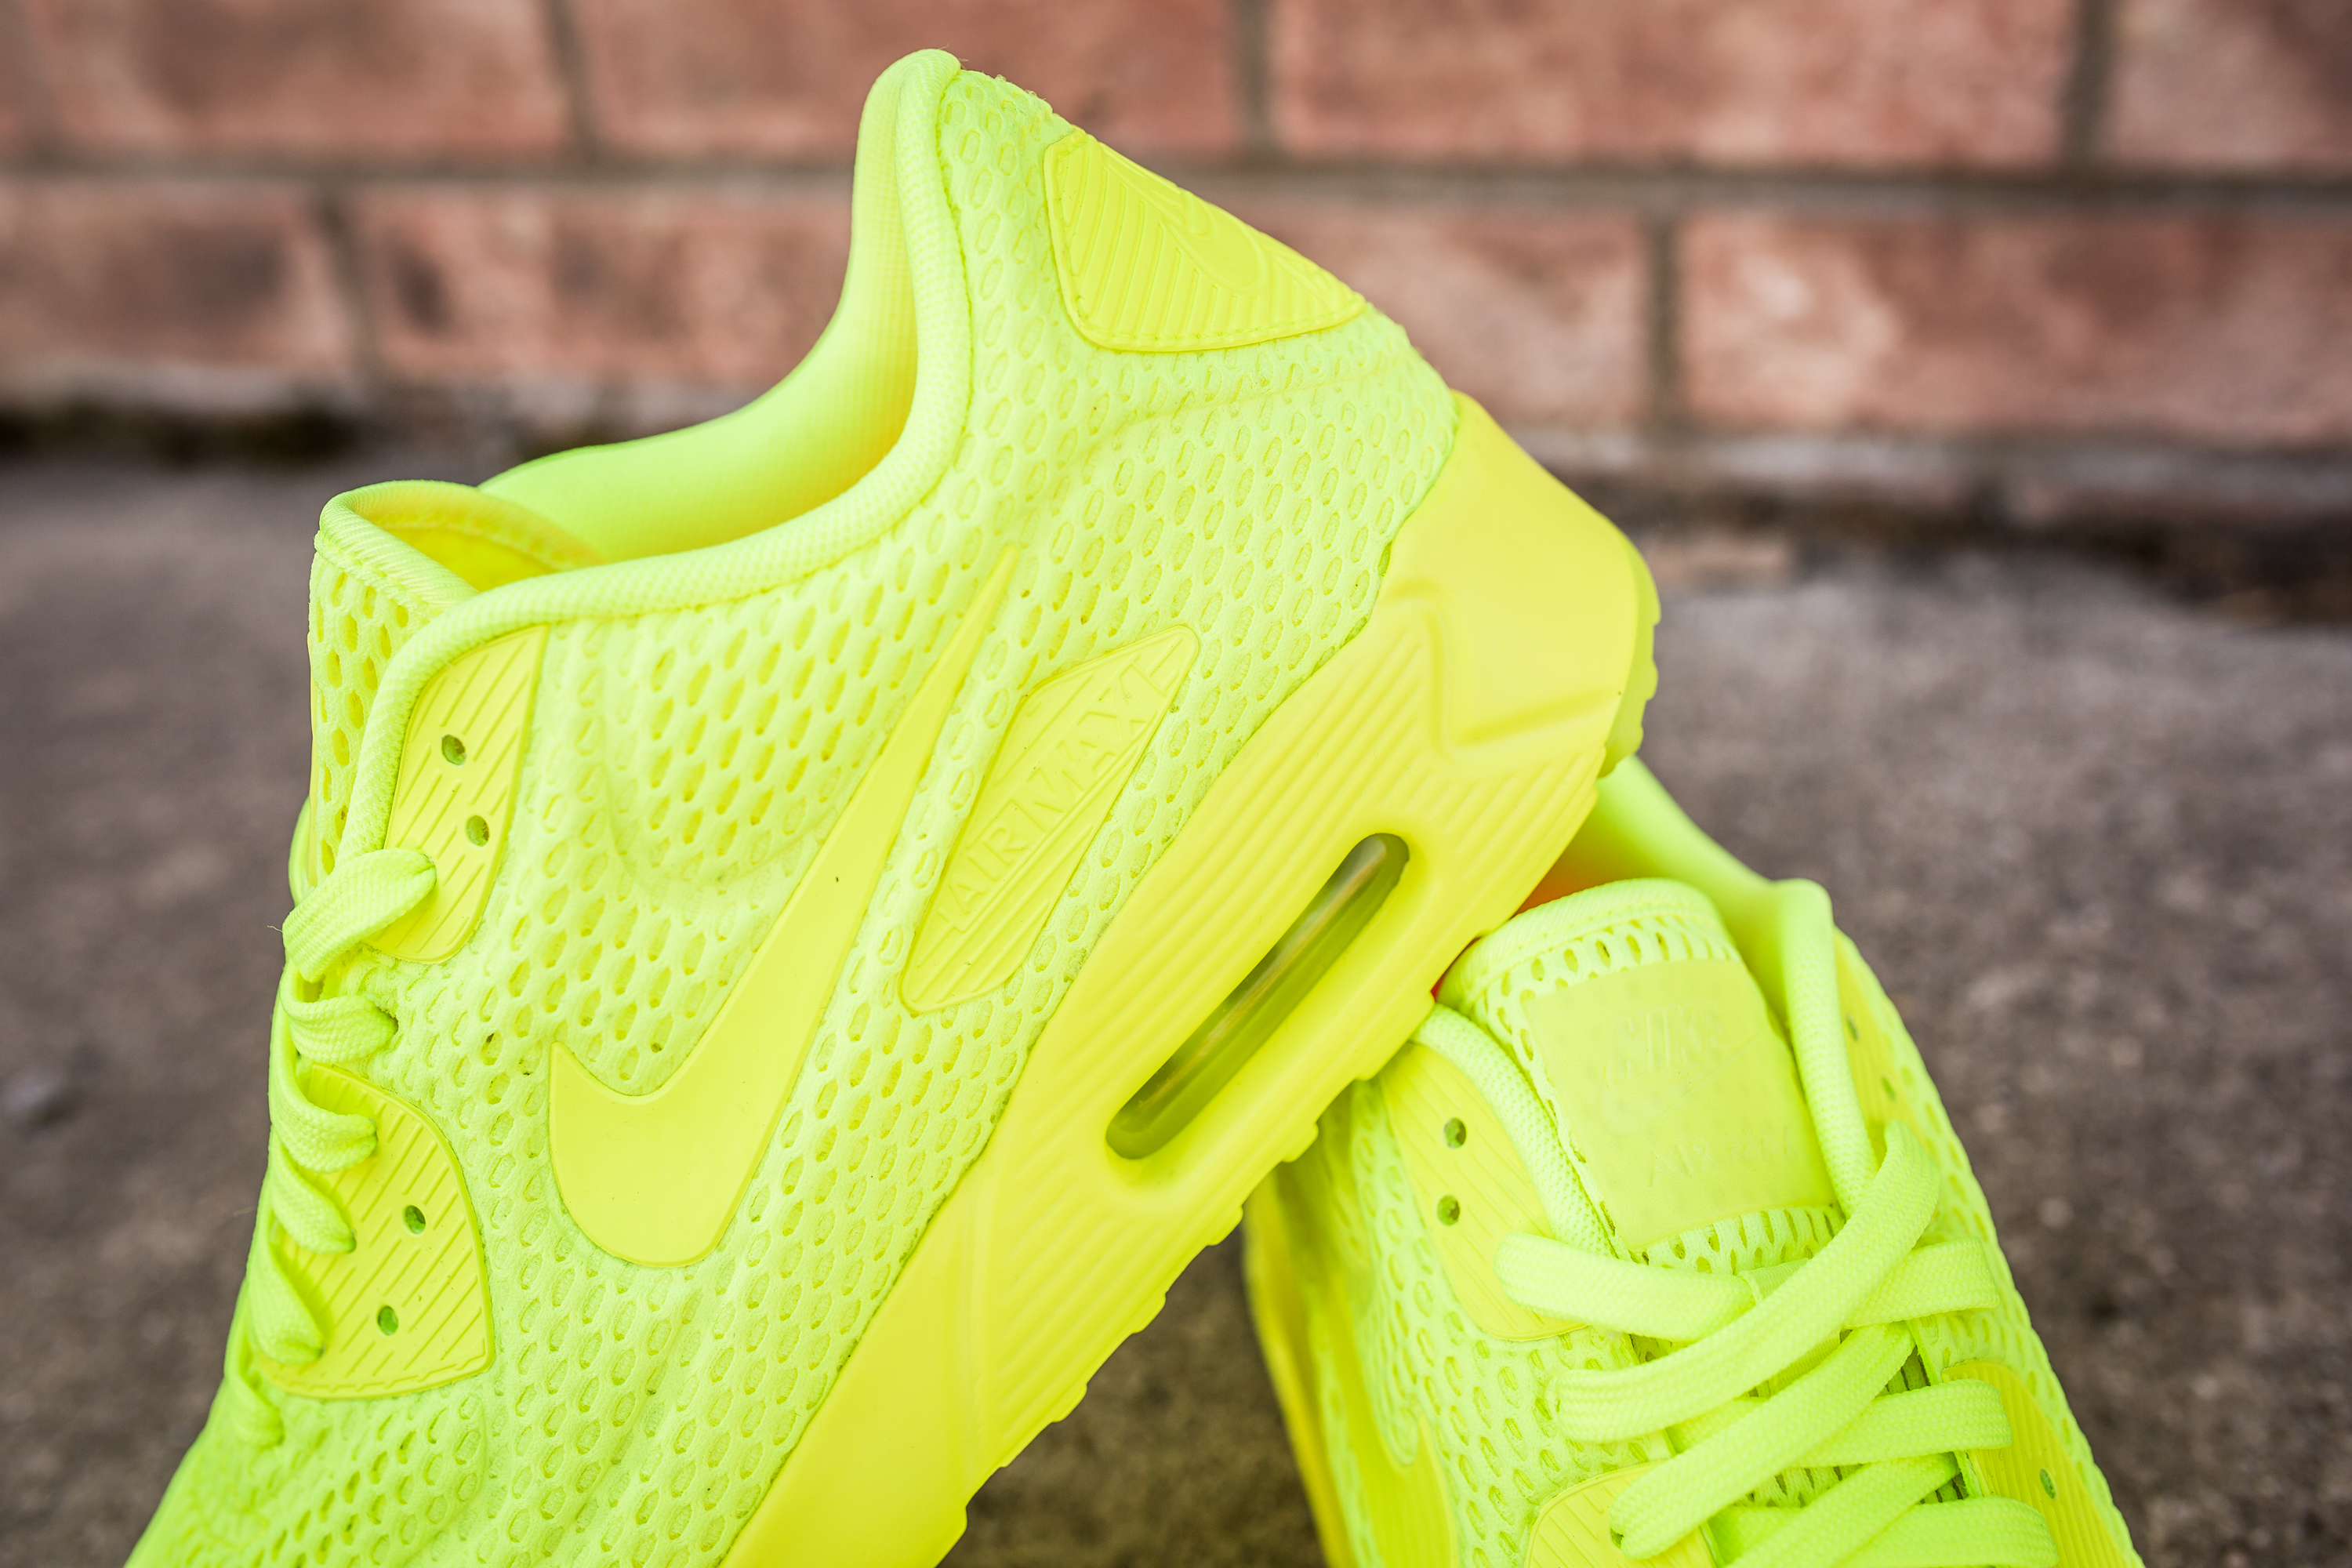 best sneakers 4220f 23d77 ... discount code for nike air max 90 ultra br volt 10 656c0 2ef01